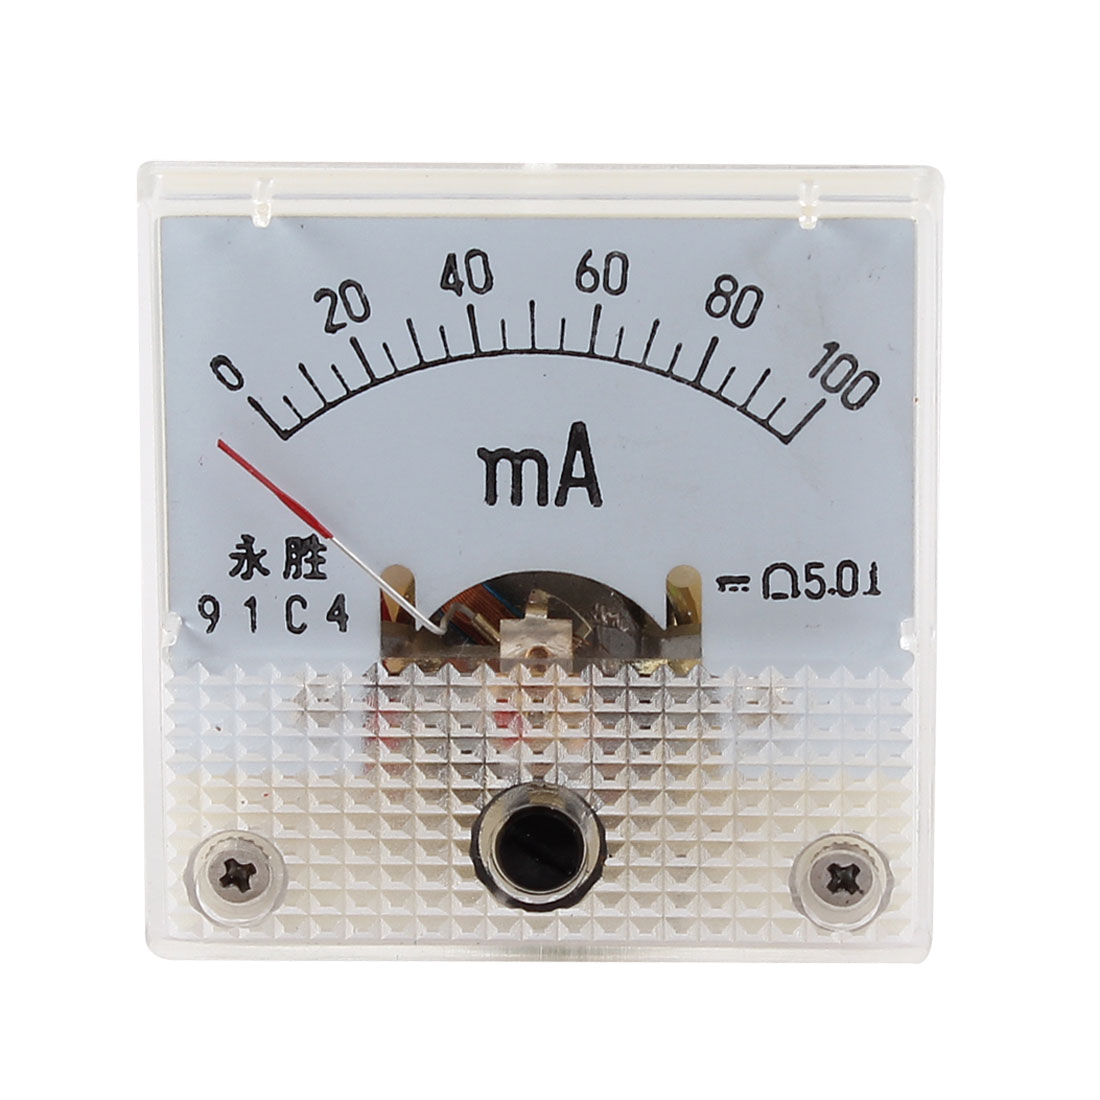 Fine Turning Dial AC 0-100mA Analog Ammeter Panel Meter 91C4